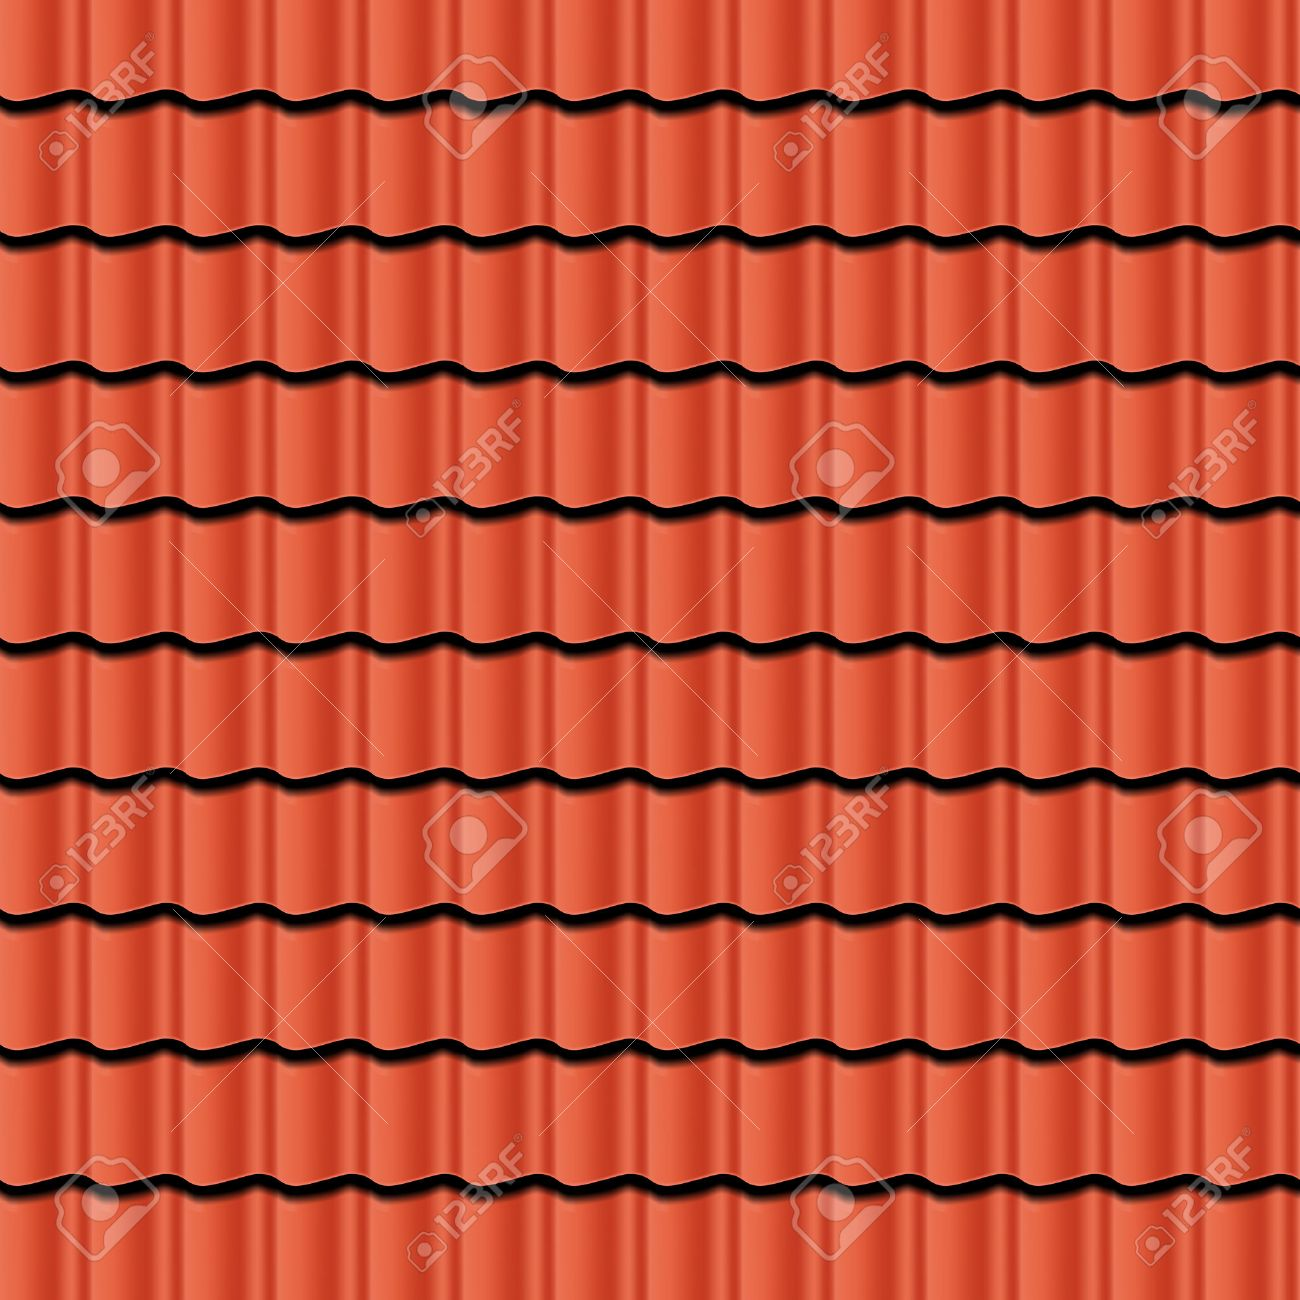 Red corrugated tile element of roof. Seamless pattern. Vector illustration Stock Vector - 36399819